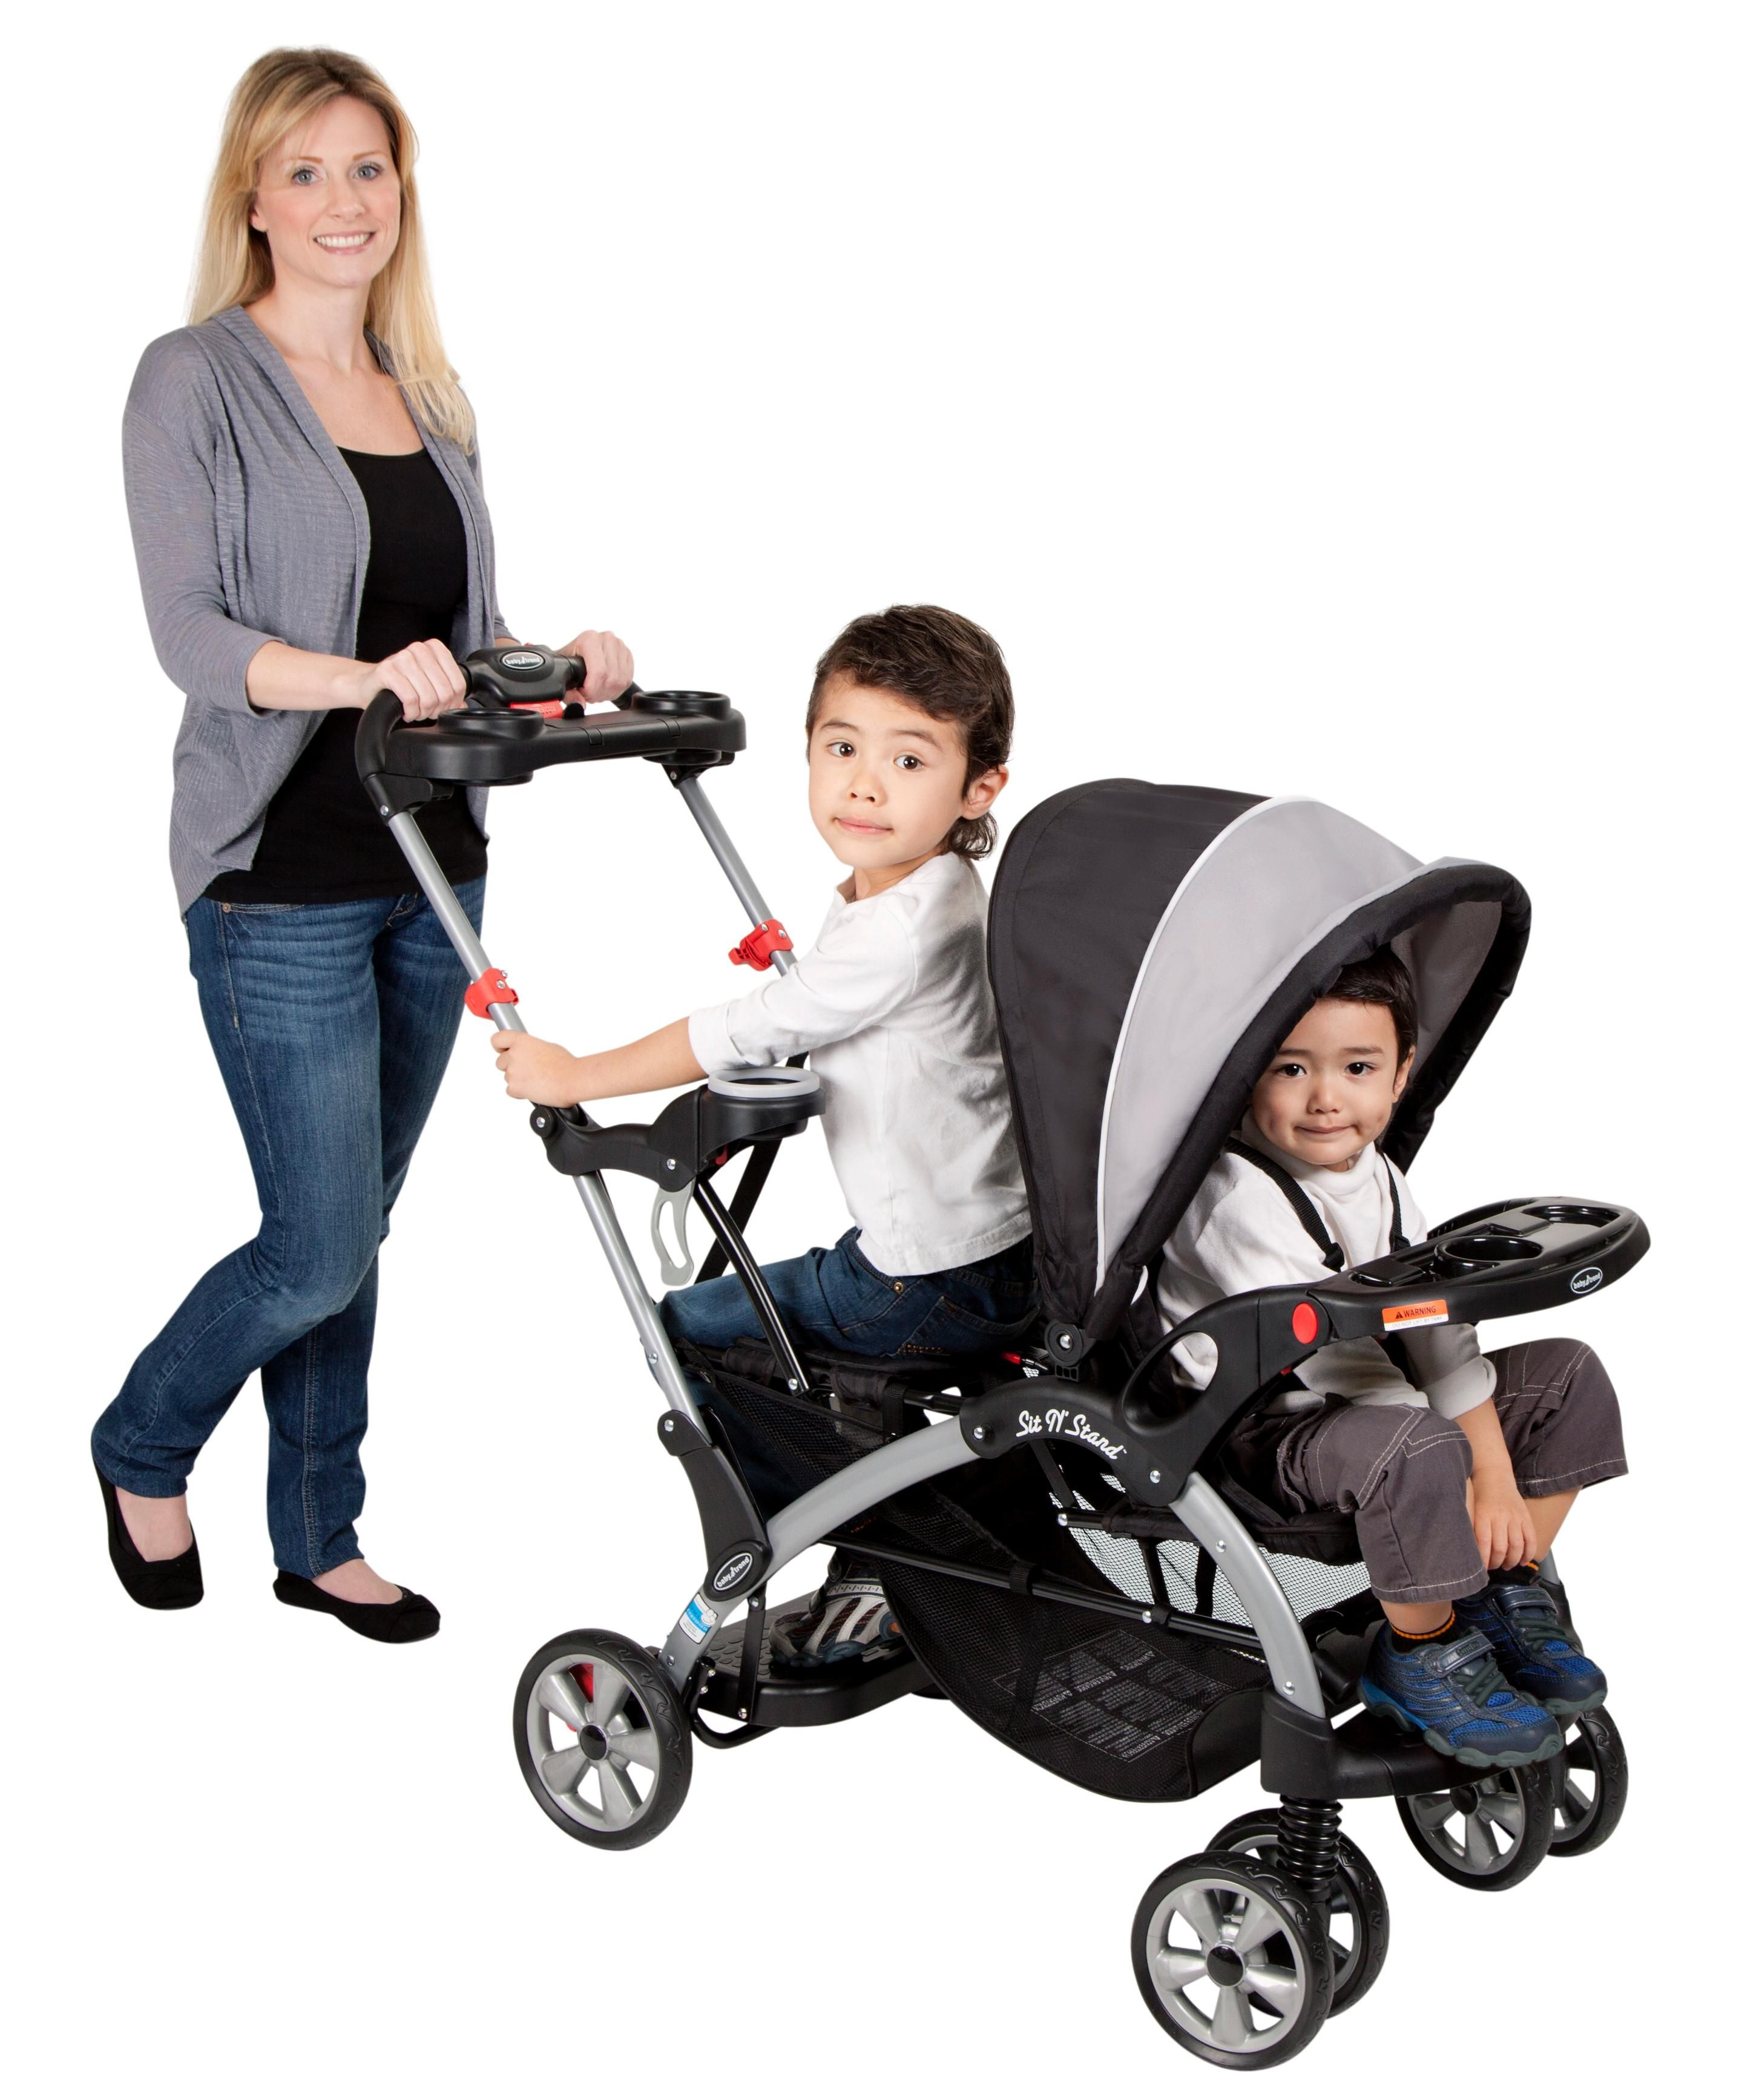 Baby Trend Sit N Stand Ultra Tandem Stroller an amazing